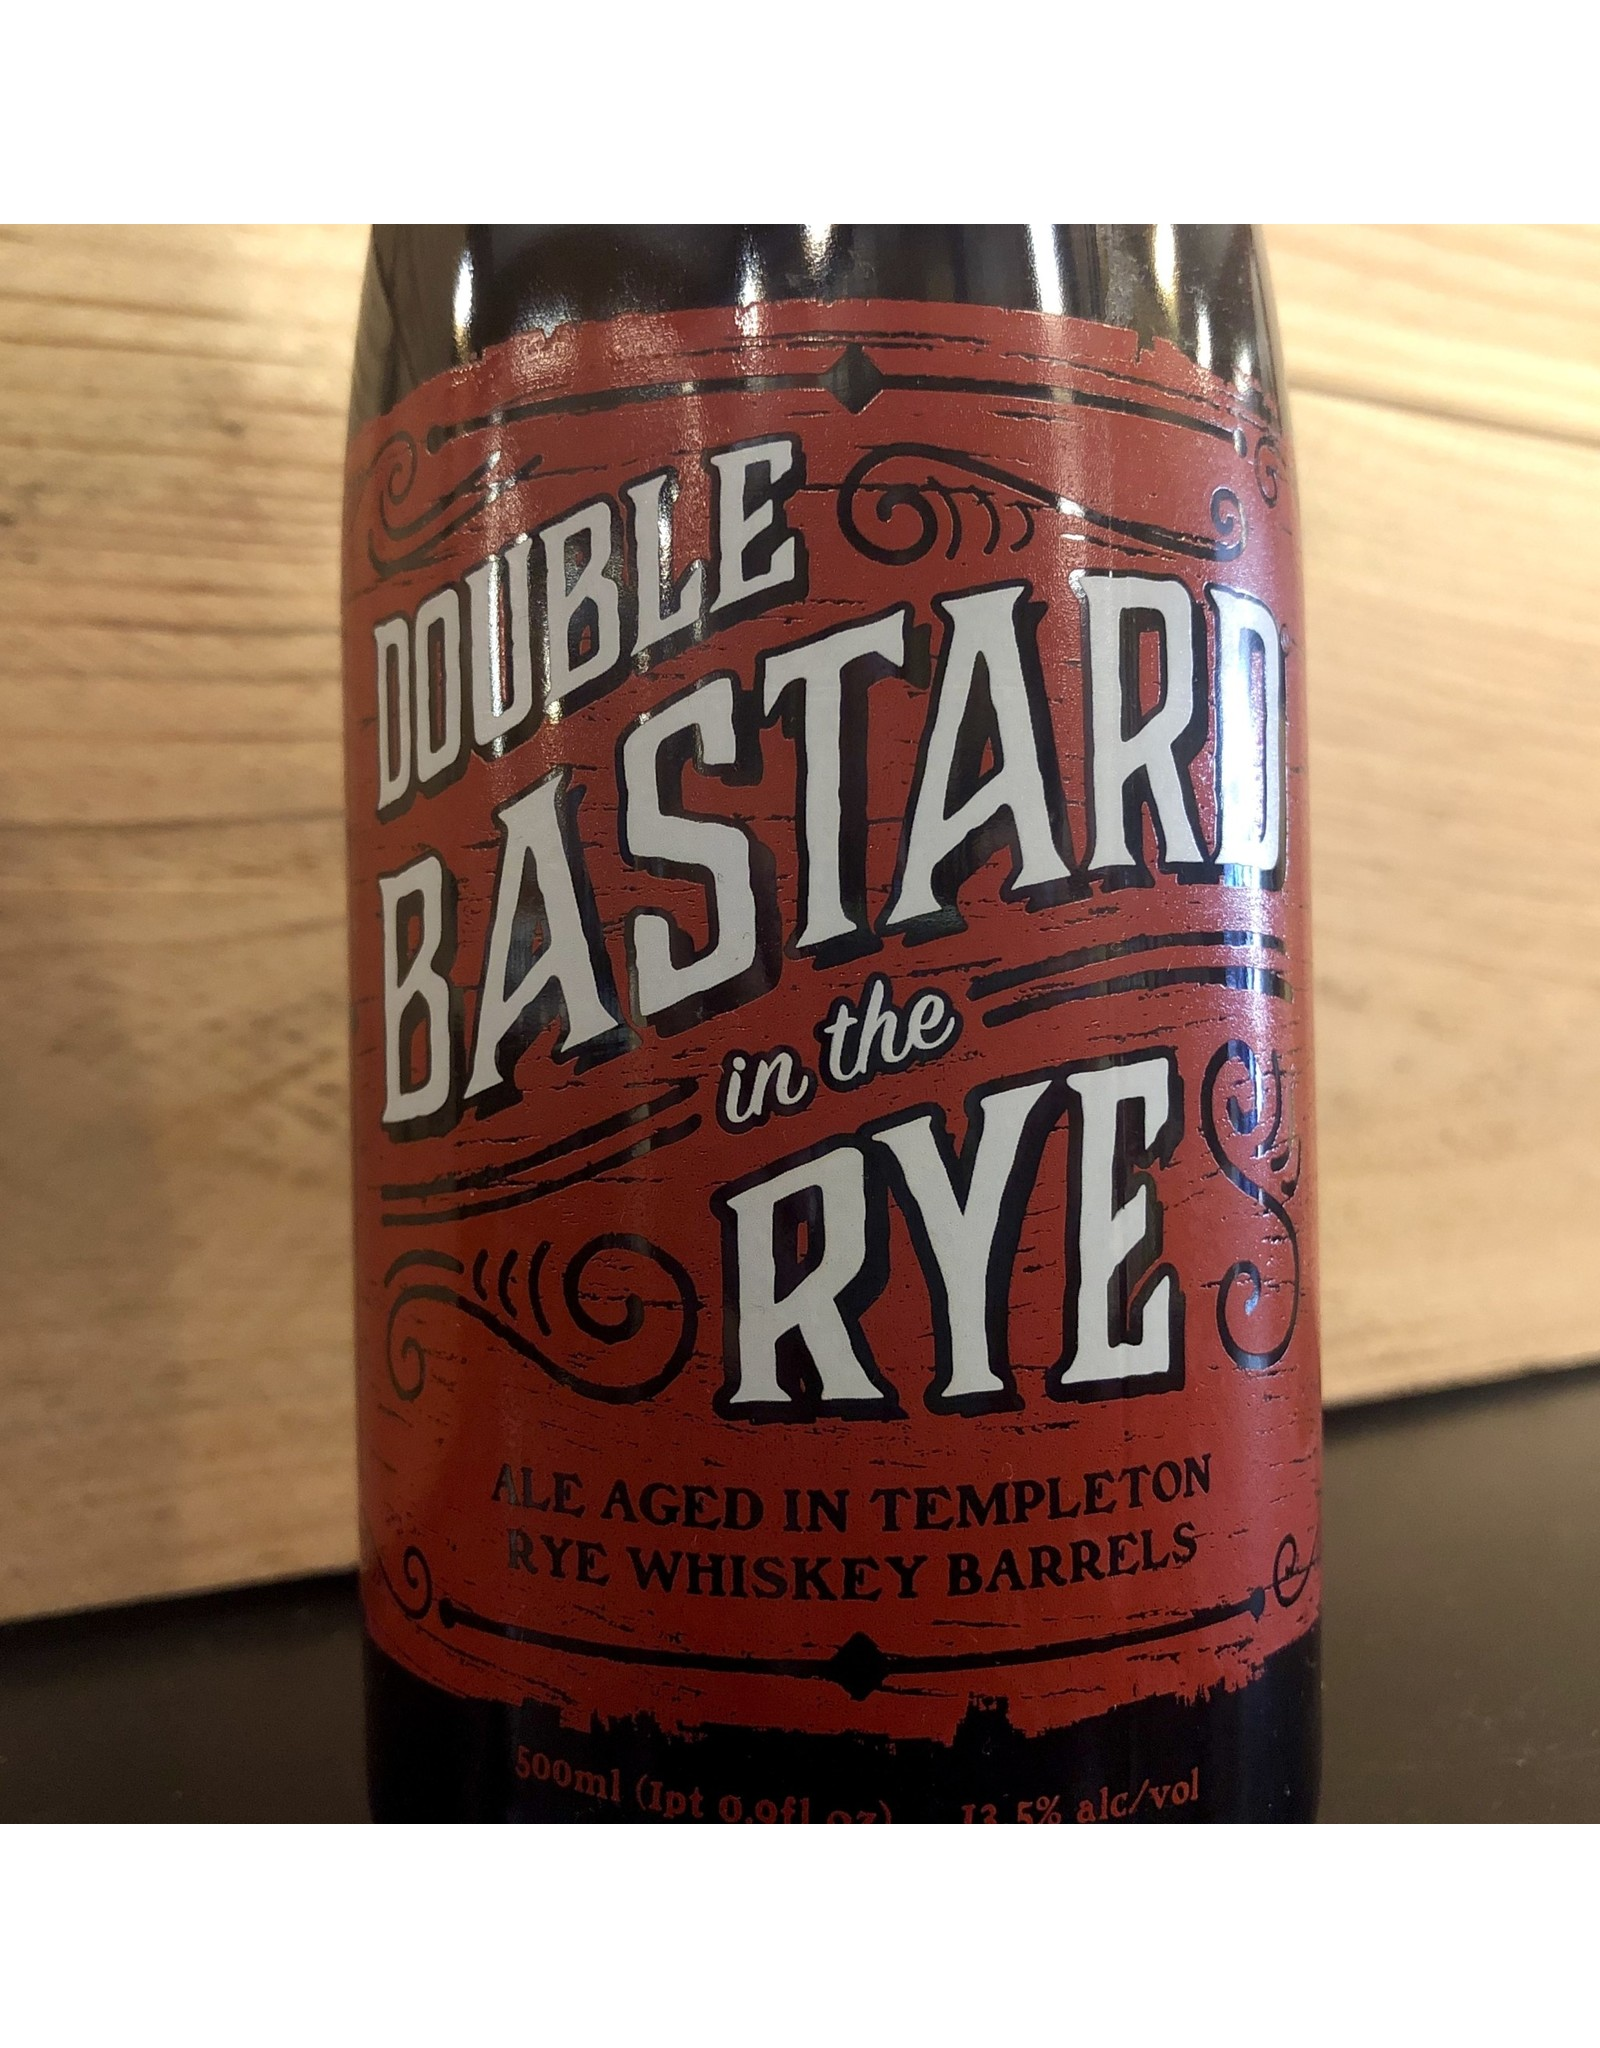 Stone Rye Barrel Double Bastard - 500 ML